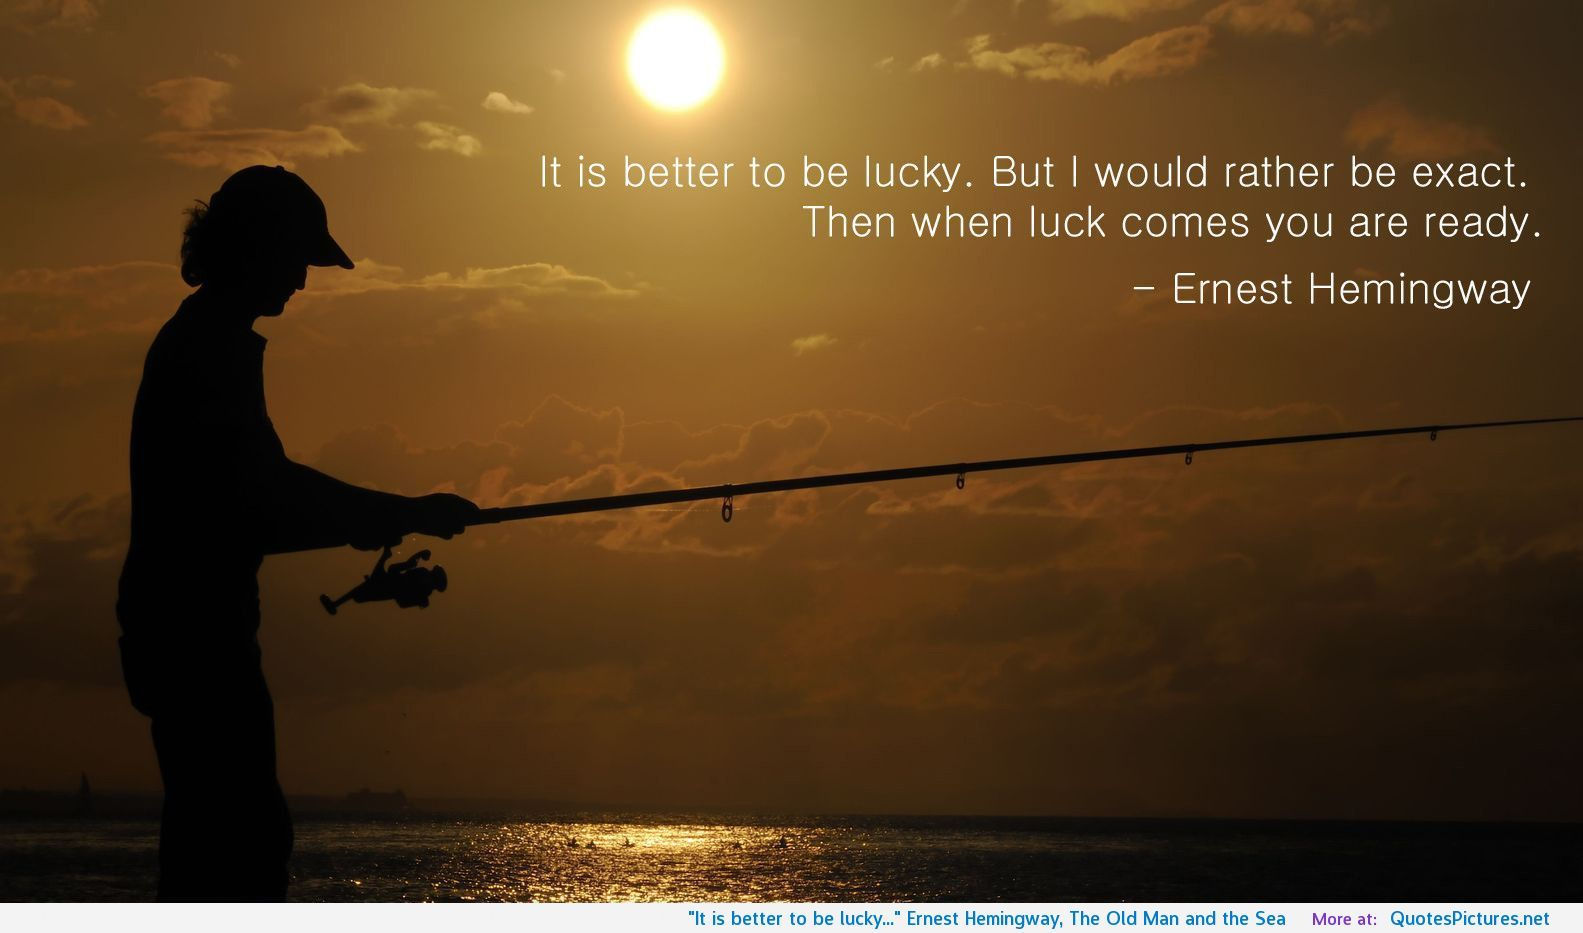 It Is Better To Be Lucky Ernest Hemingway The Old Man And The Sea